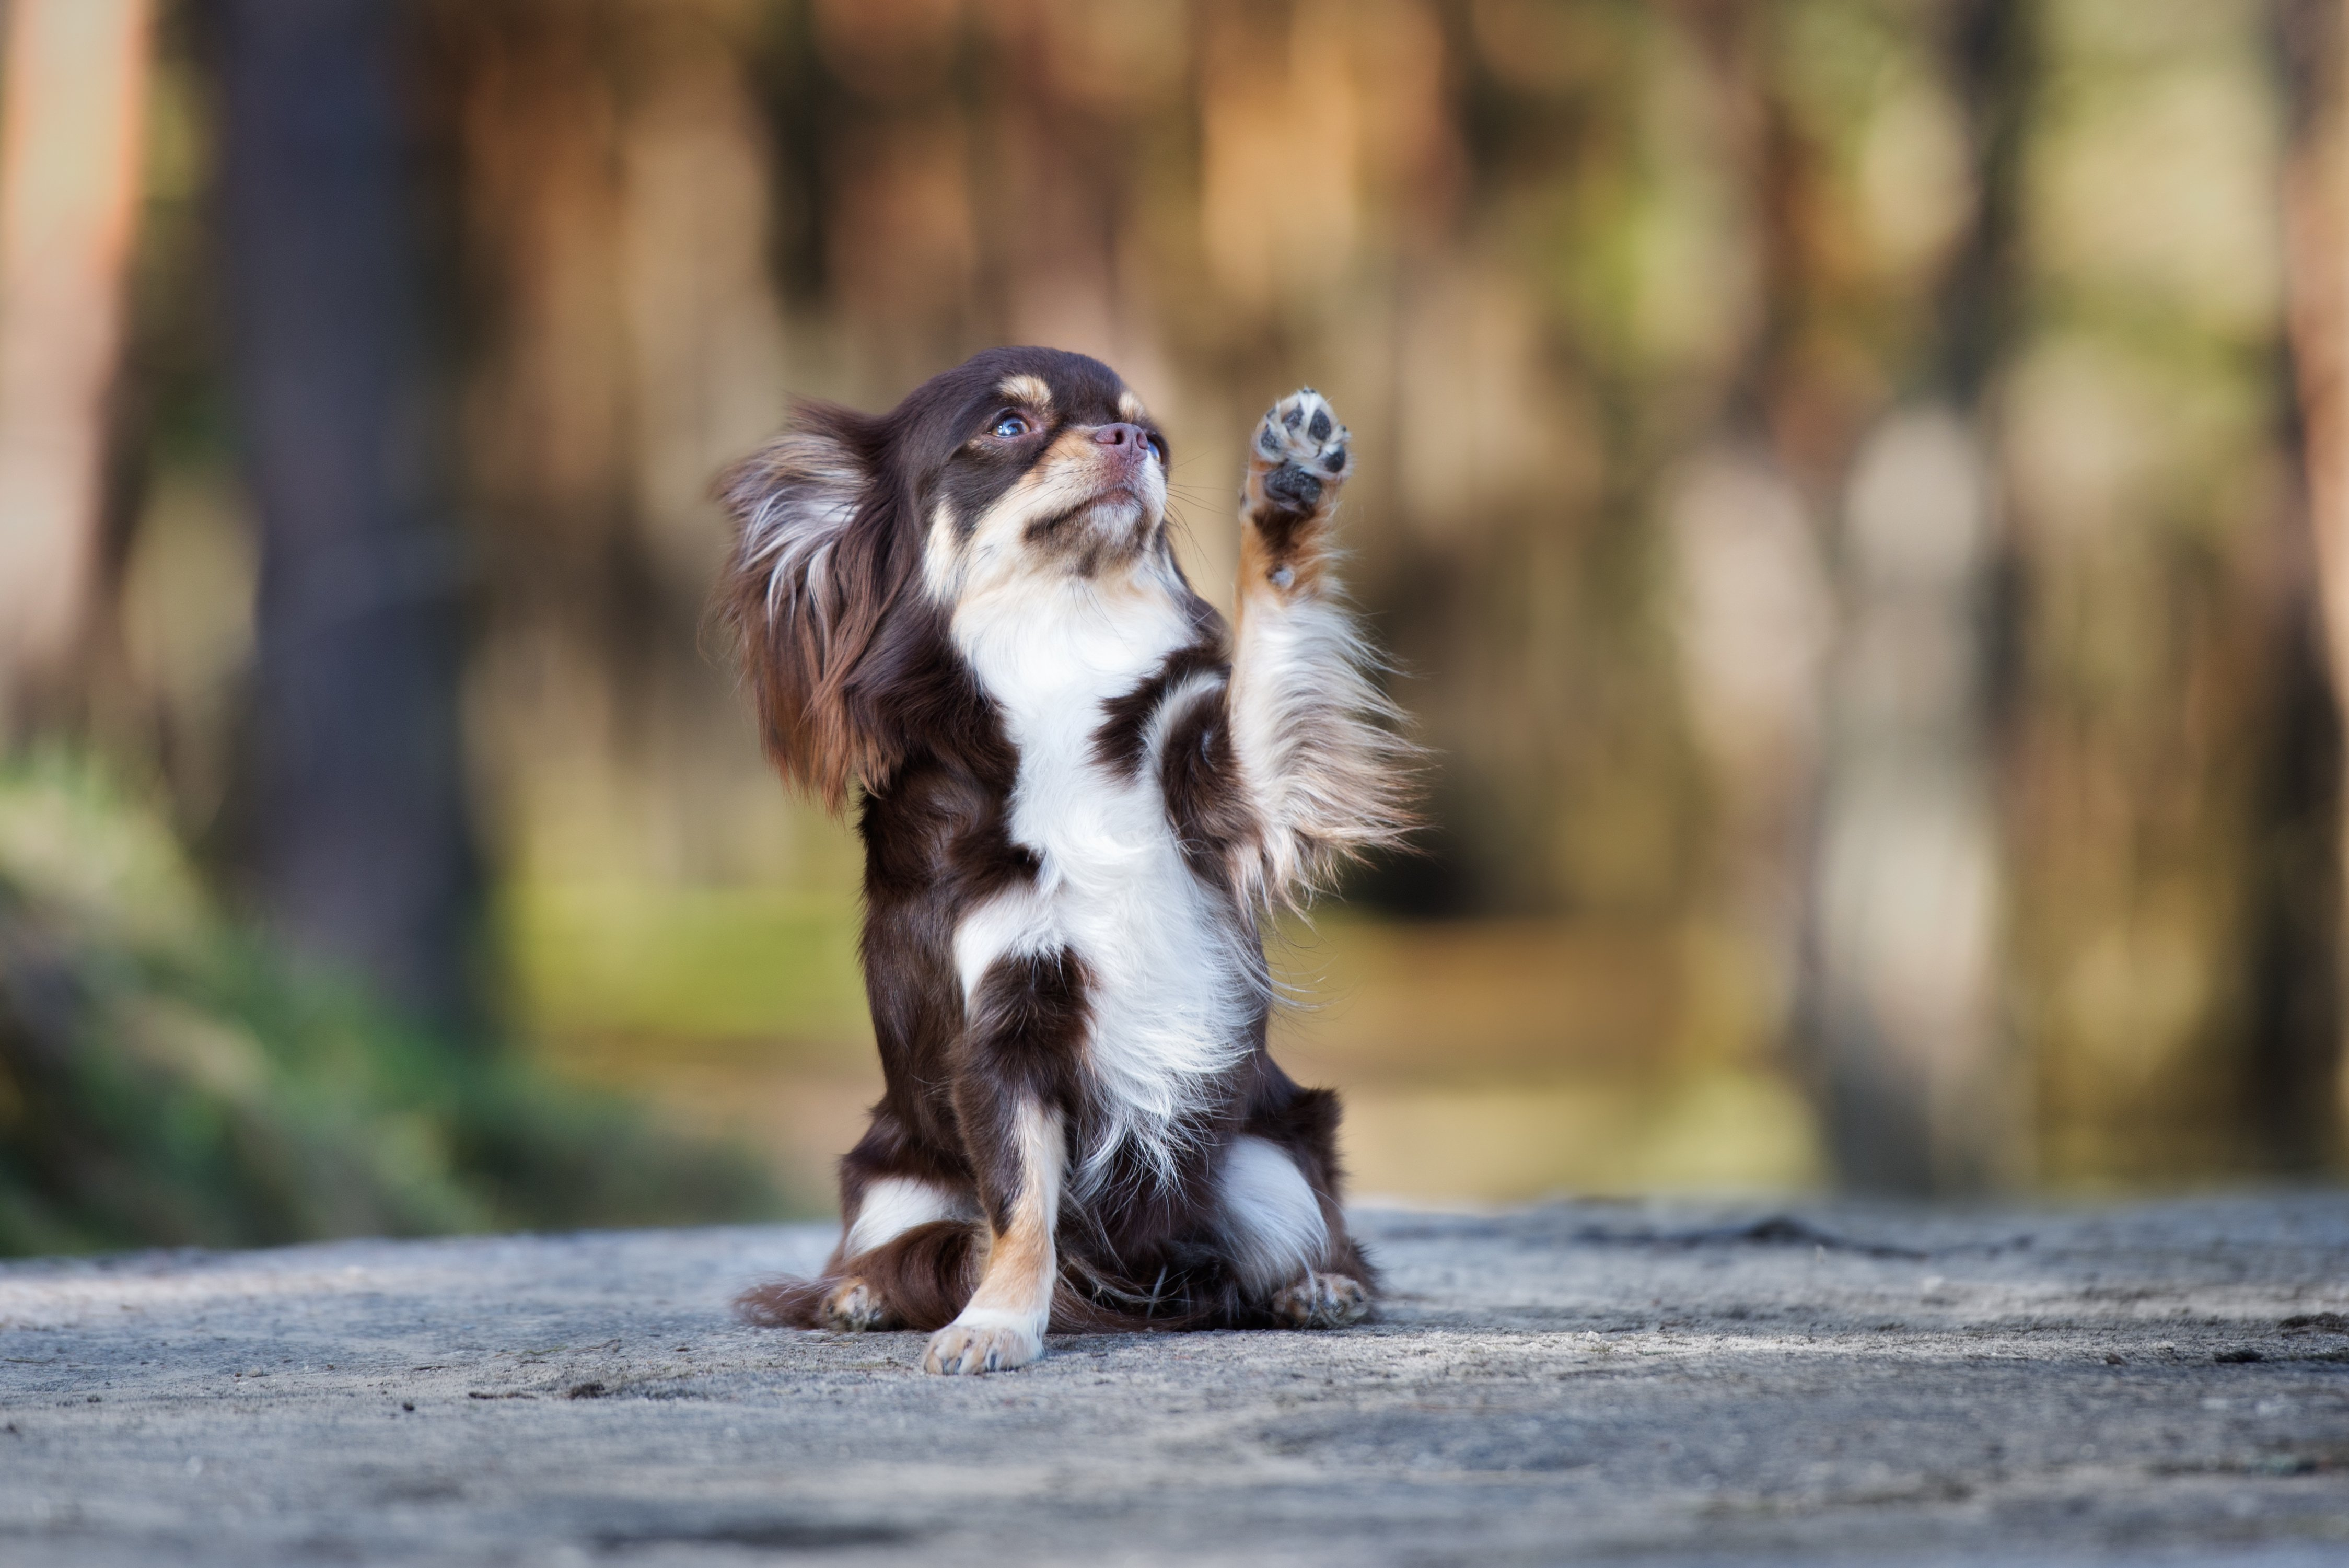 Chihuahua dog waves paw in the air | Photo: Shutterstock